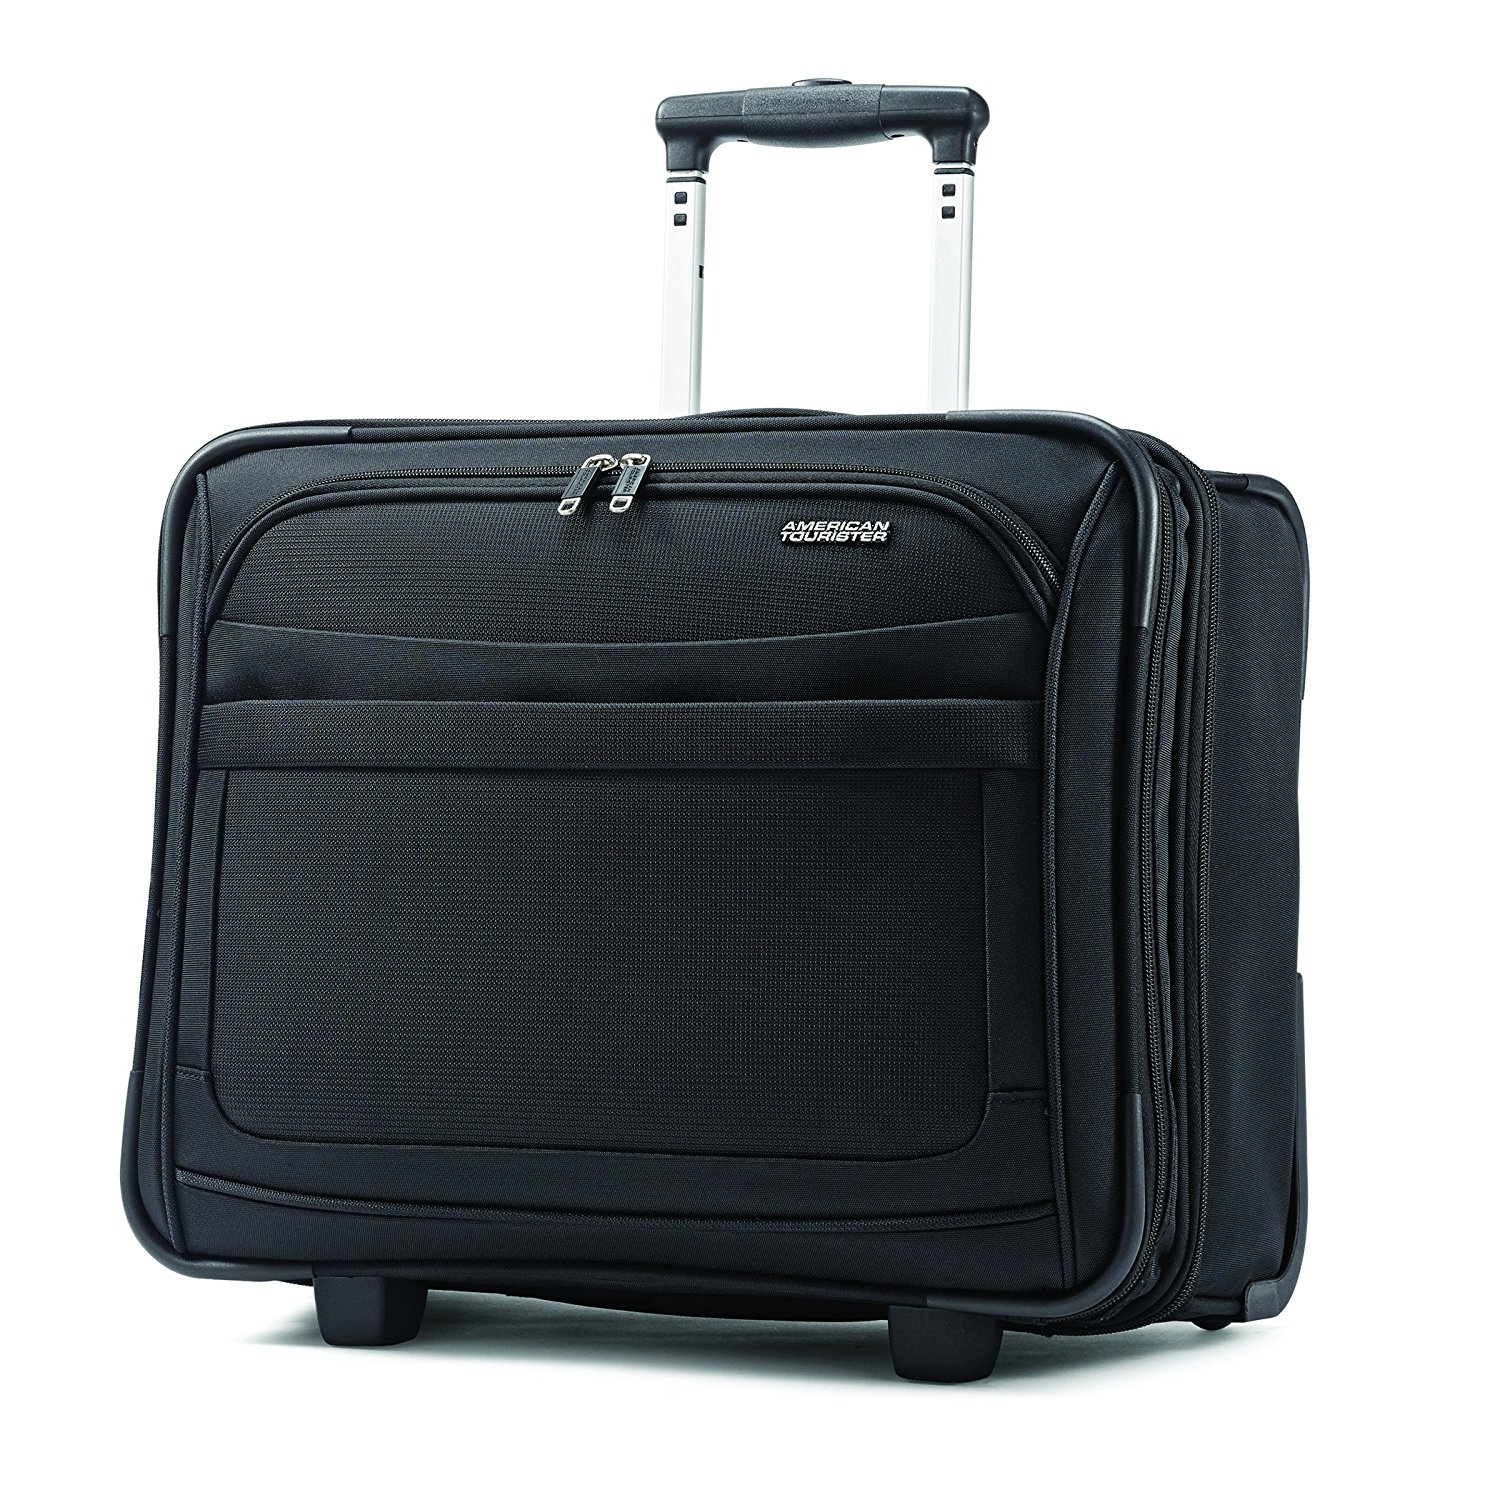 bc8d741b2972 Buy American Tourister Carry On Wheeled Boarding Bag DeLite 2.0 ...